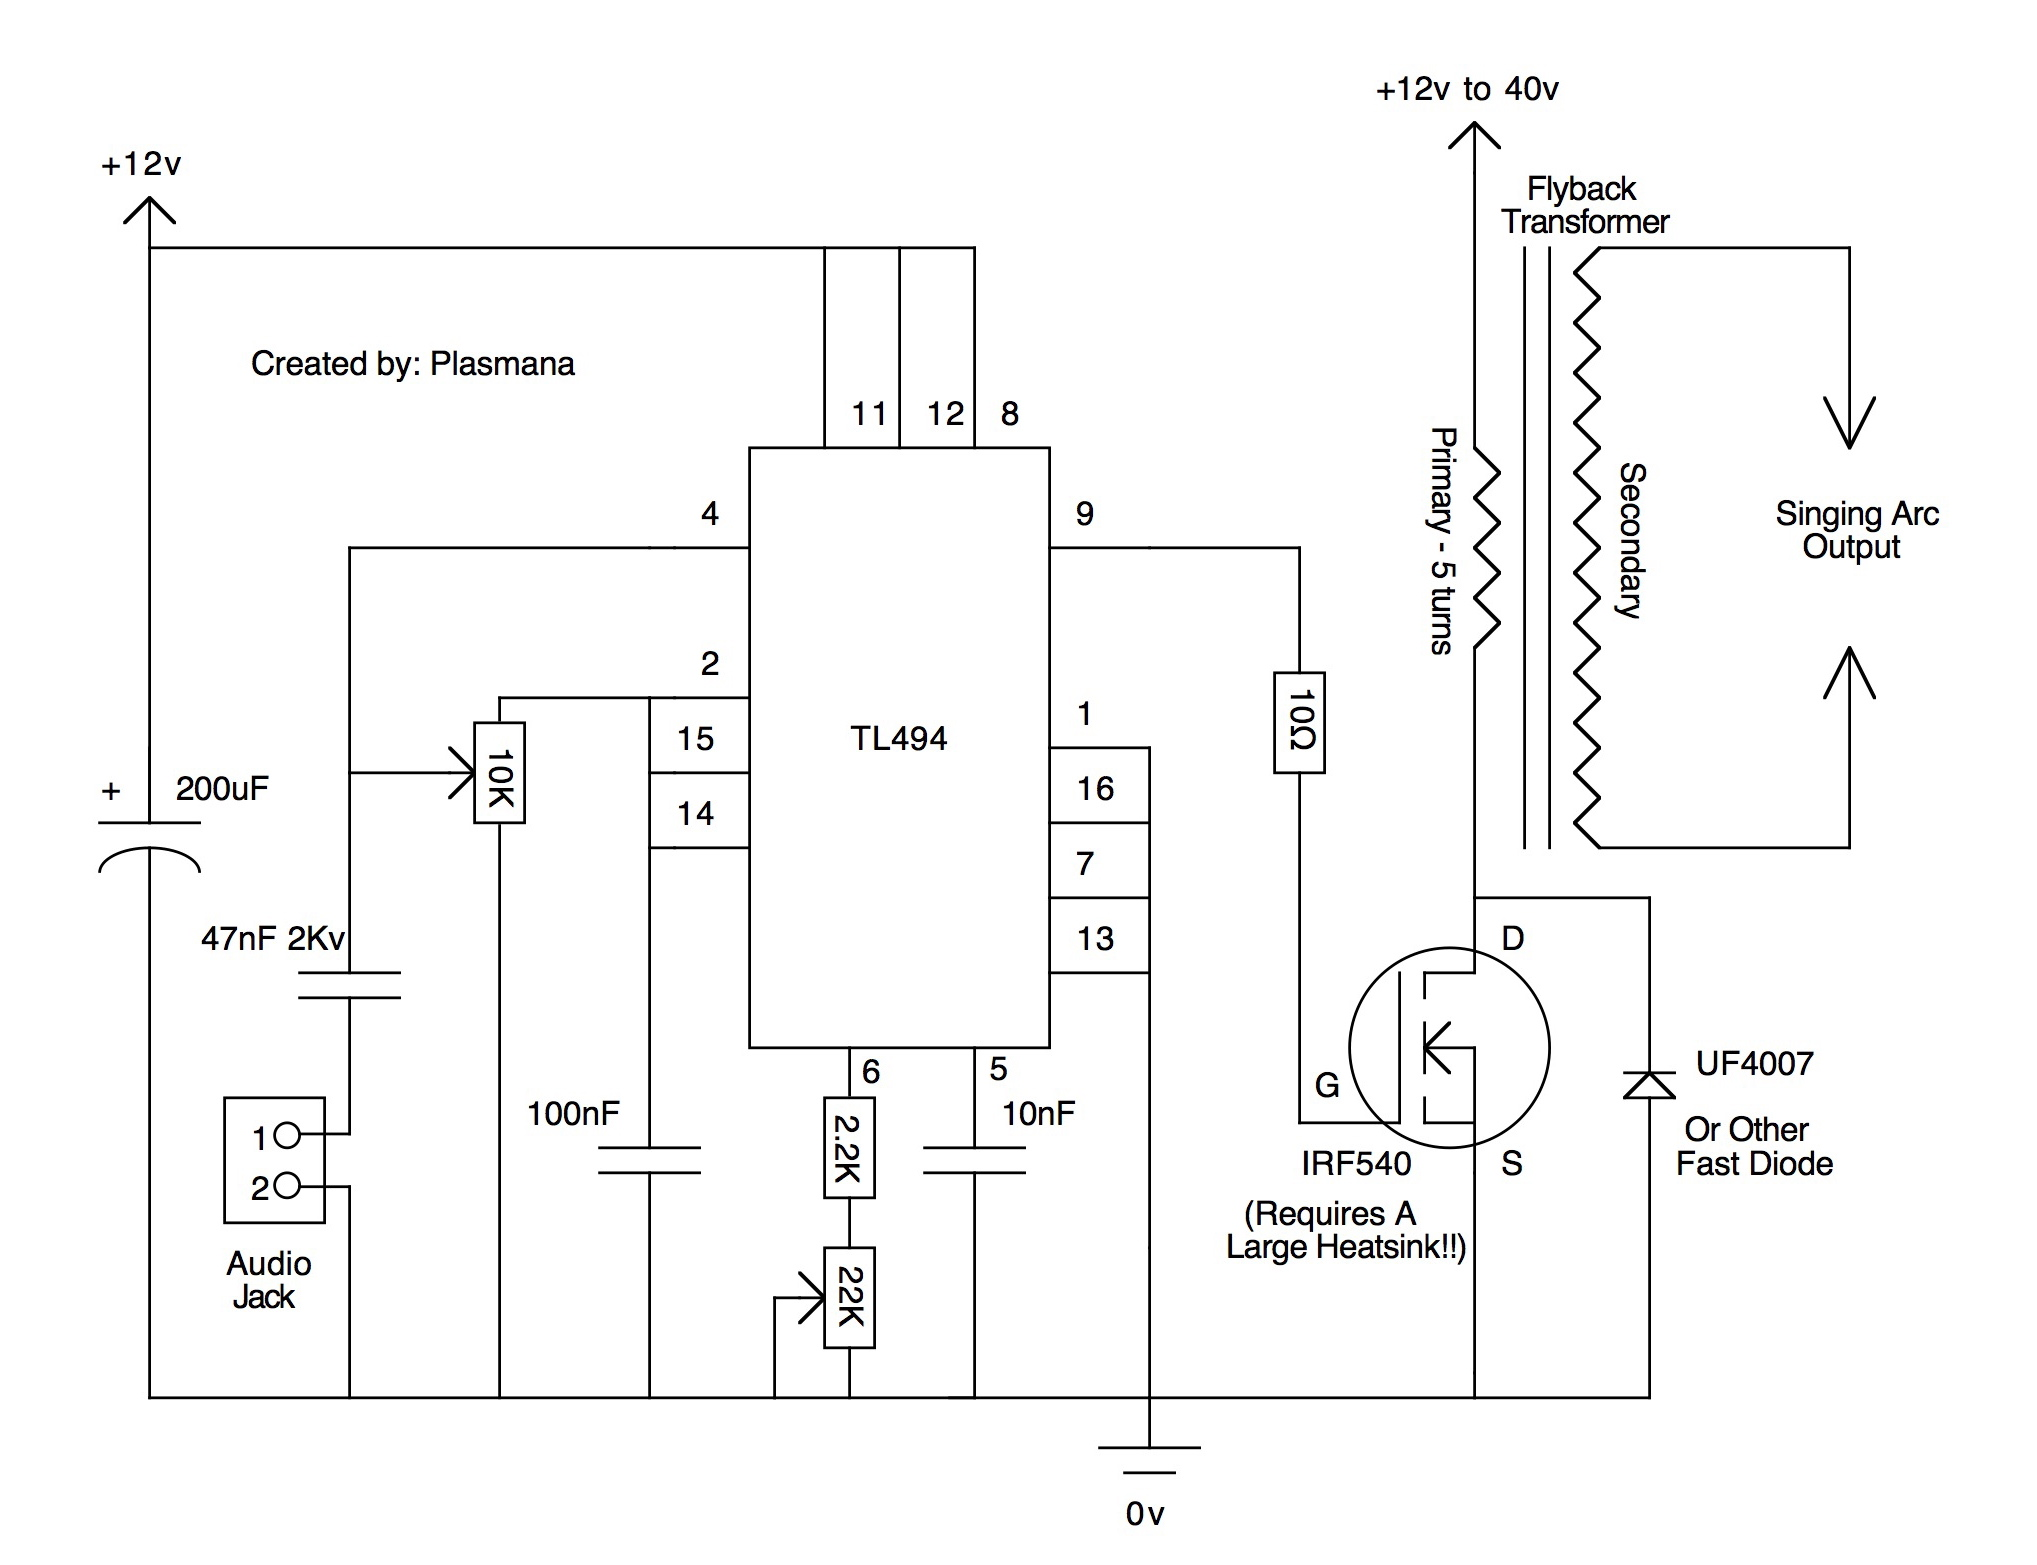 Results Page 345 About 3 Bit Up Down Counter Searching Circuits Lamp Flasher Using Lm317 According To The Datasheet Theyll Switch 160 Kw At 10 Kv 7 2 Typical Sadly This Is Not Enough For Quarter Shrinker